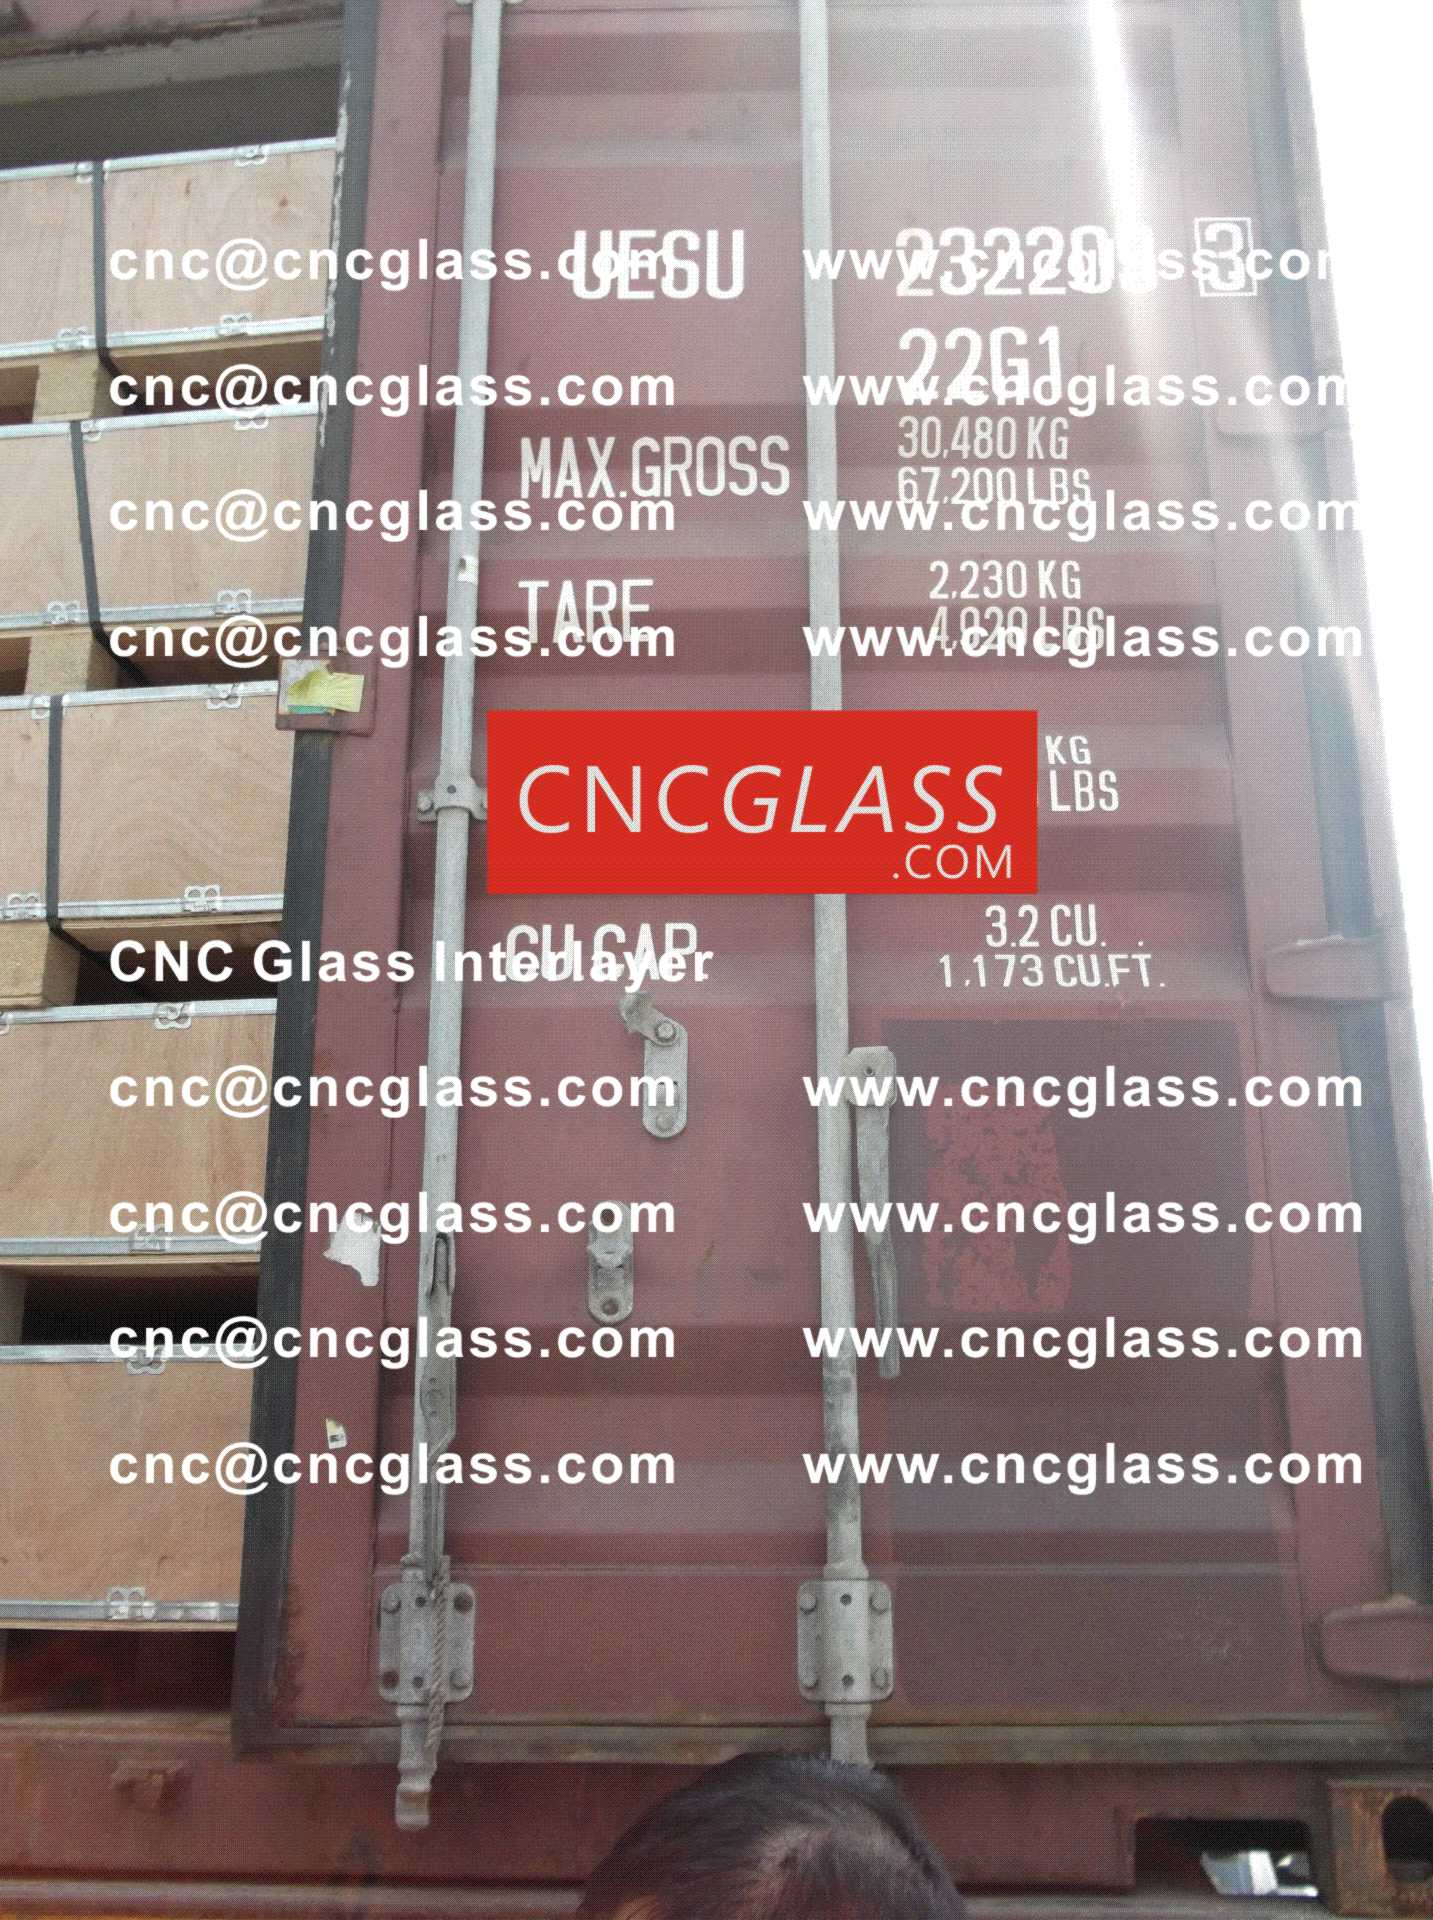 022 CNC Glass Interlayer EVA Film for Safety Laminated Glass